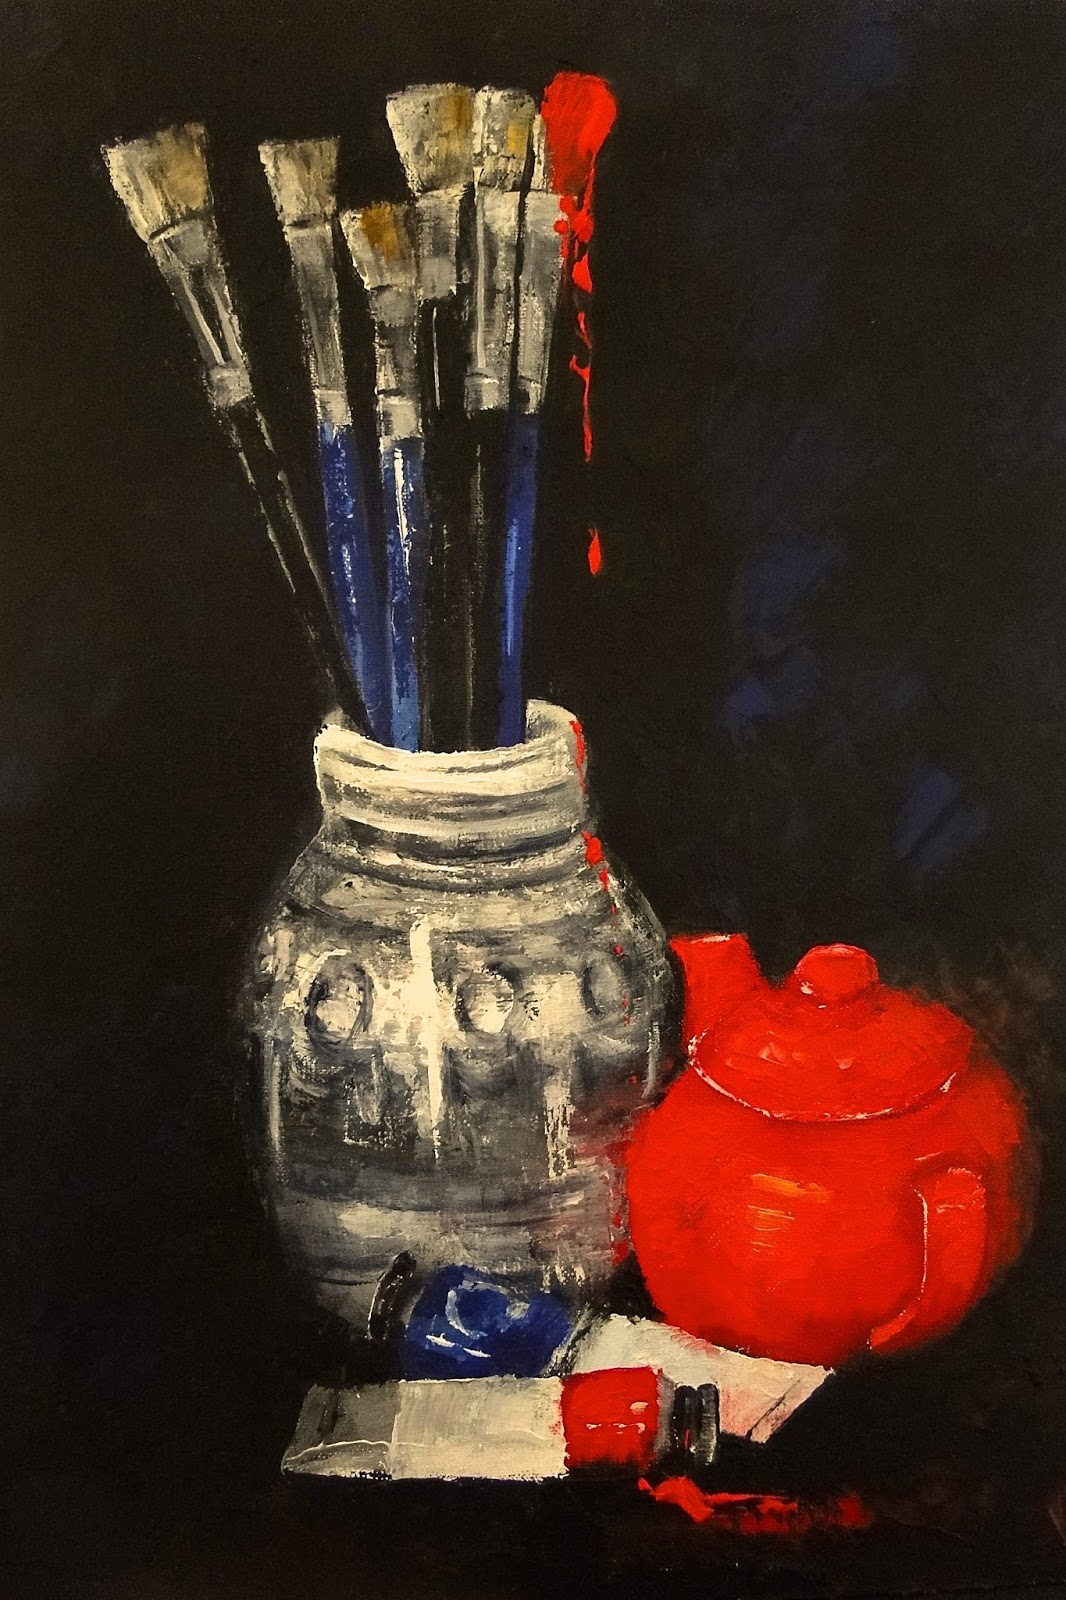 still life of vase, brushes and teapot using impasto red oil paint and a palette knife